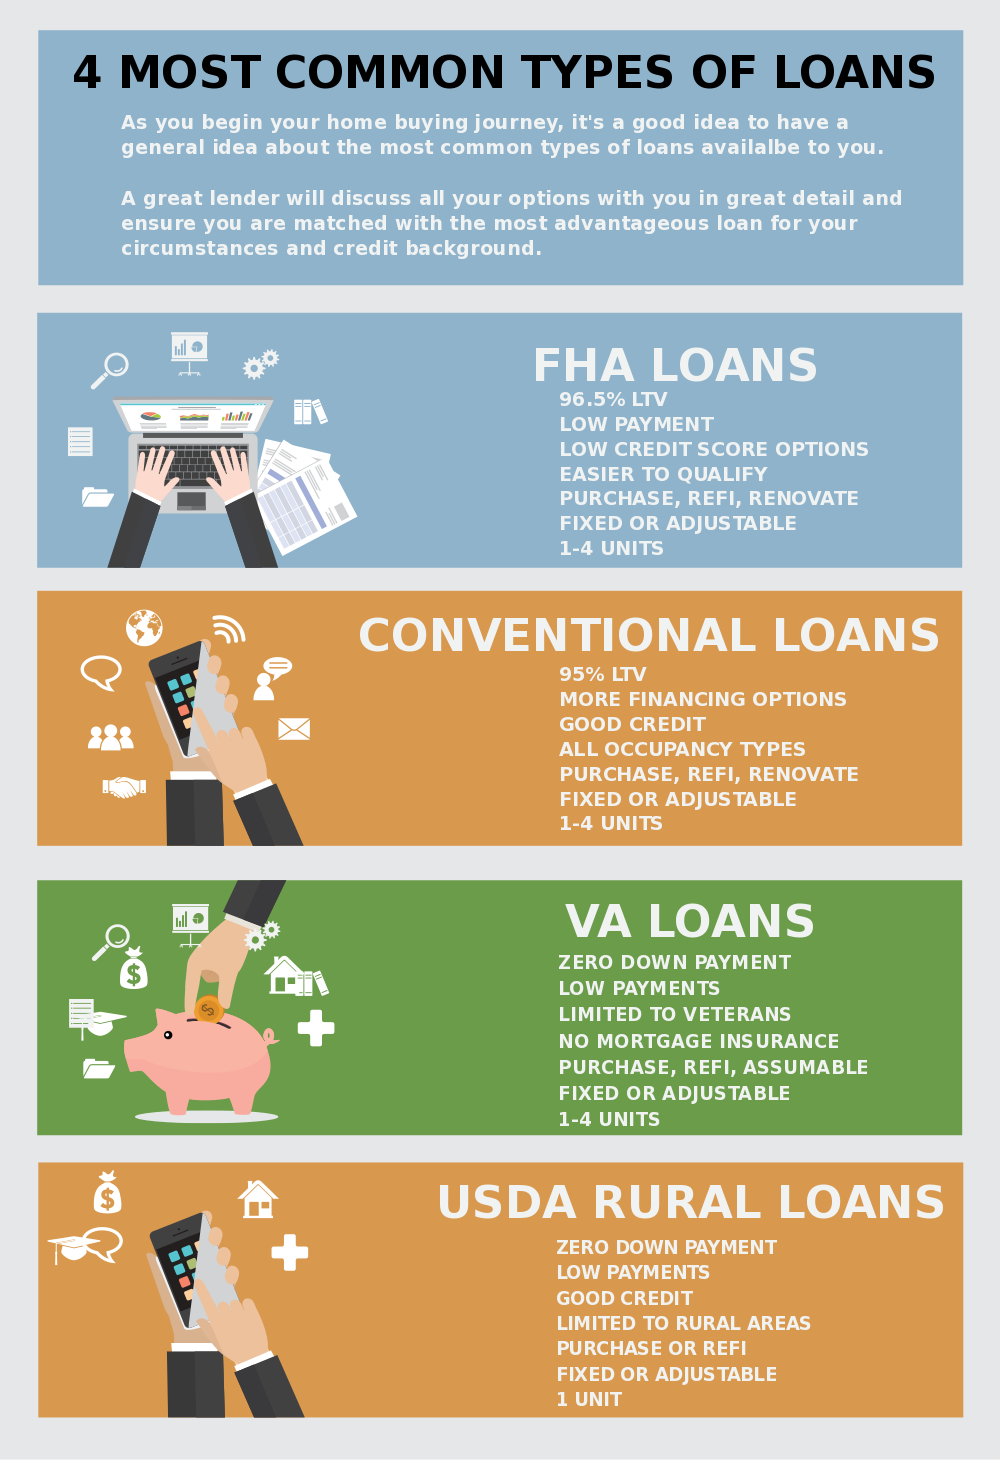 4-most-common-types-of-loans